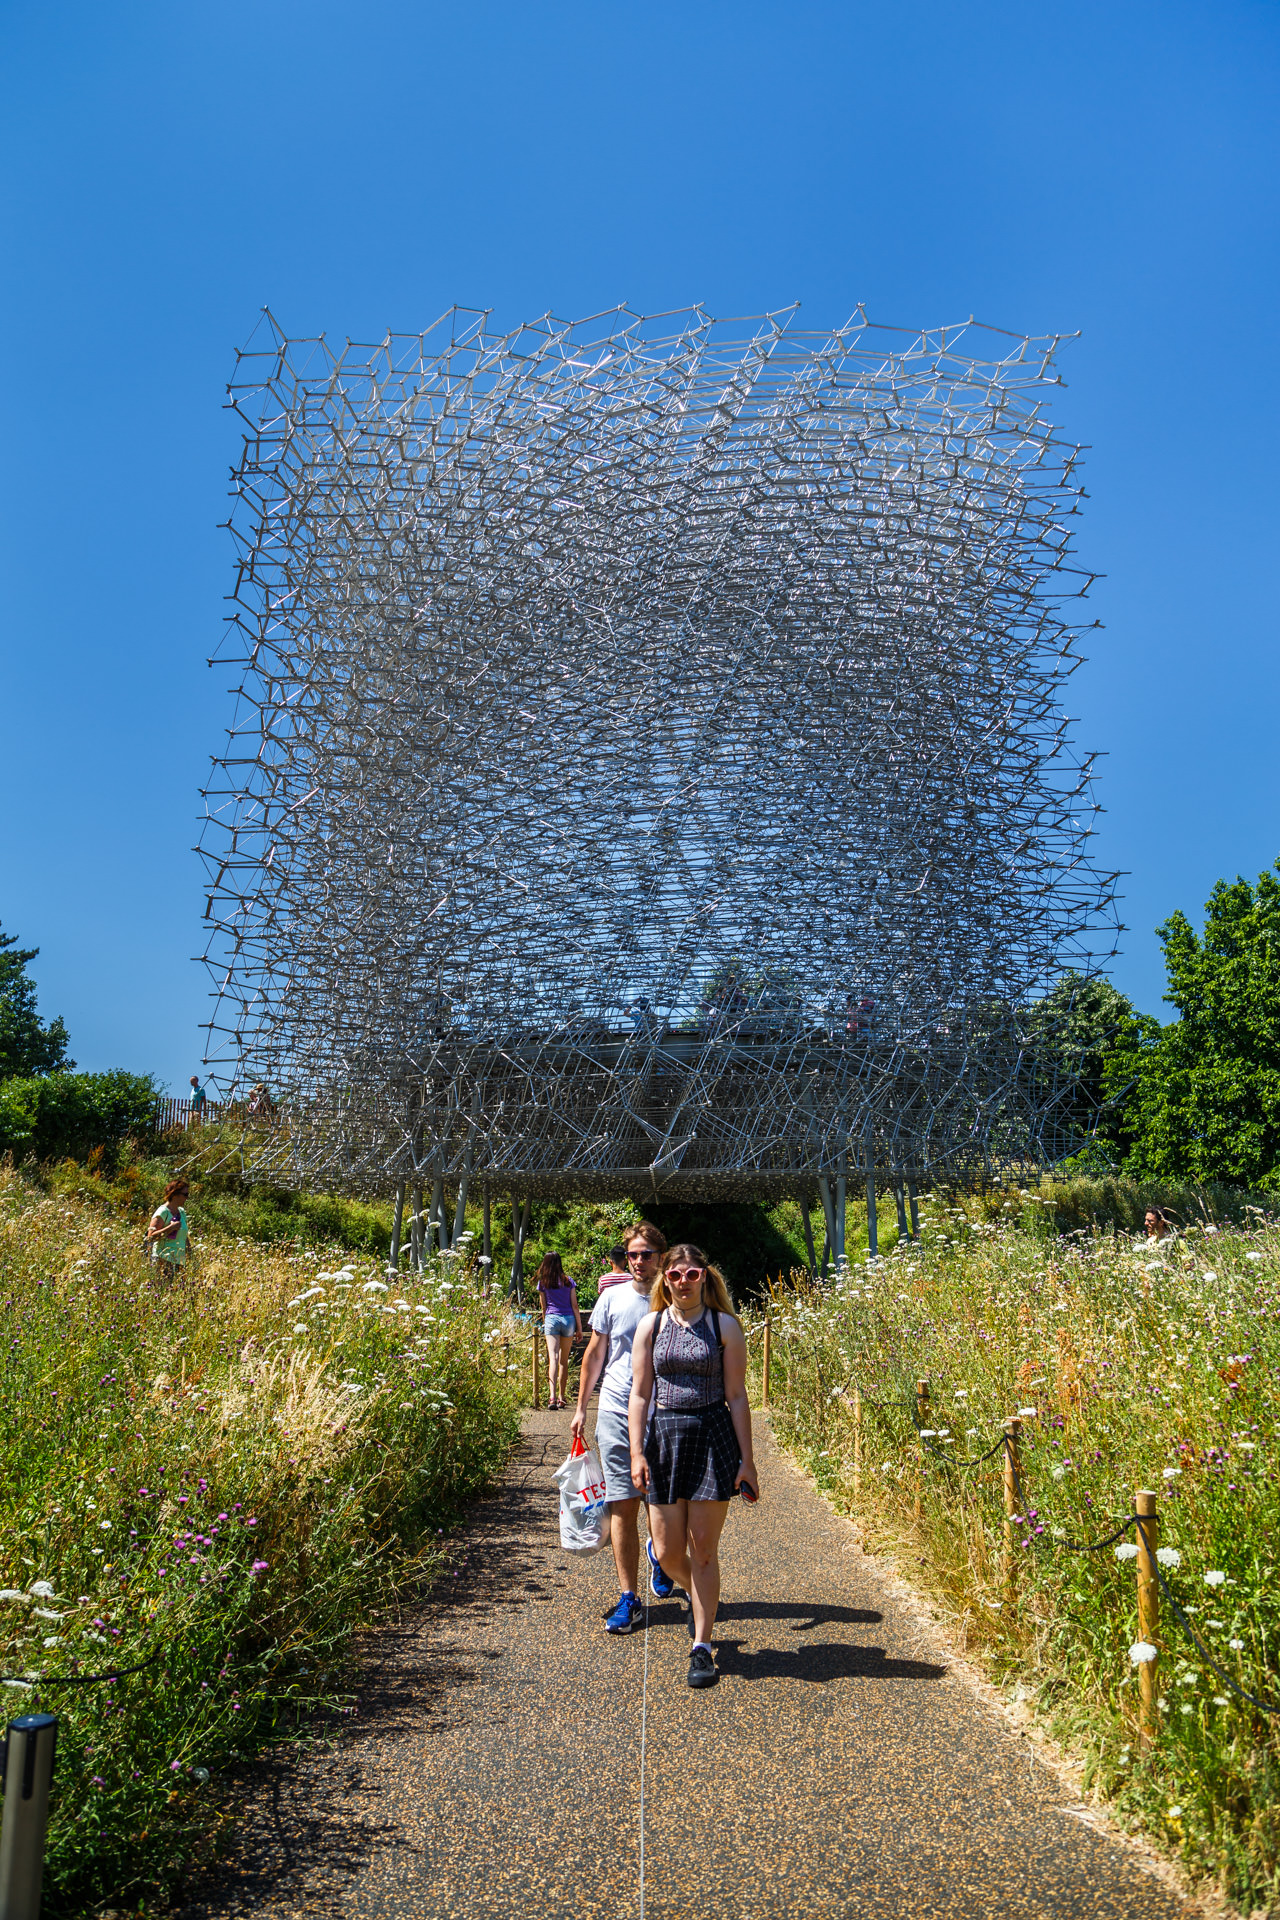 The Hive designed by UK-based artist Wolfgang Buttress.